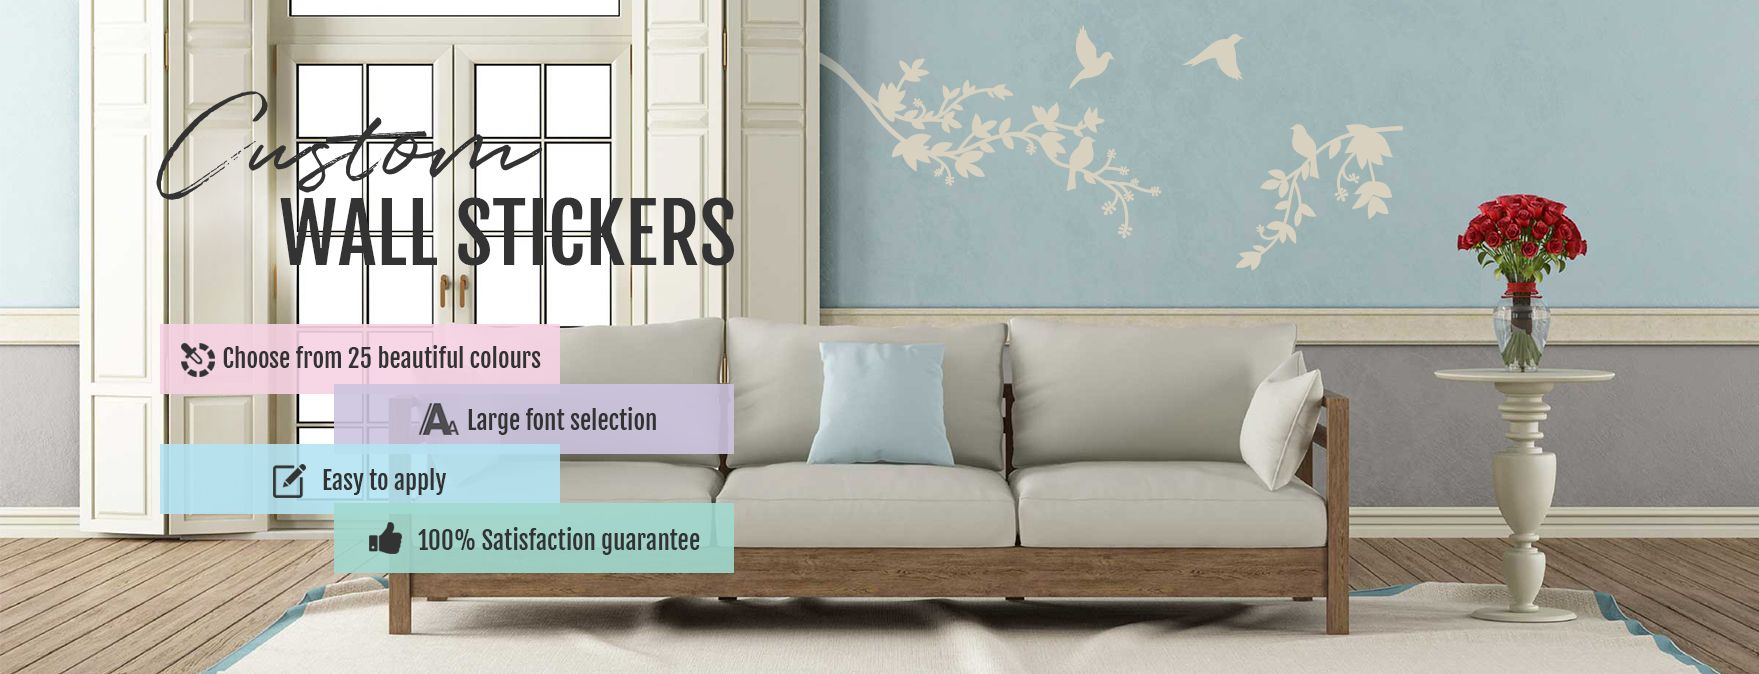 Banner for Custom Wall Stickers